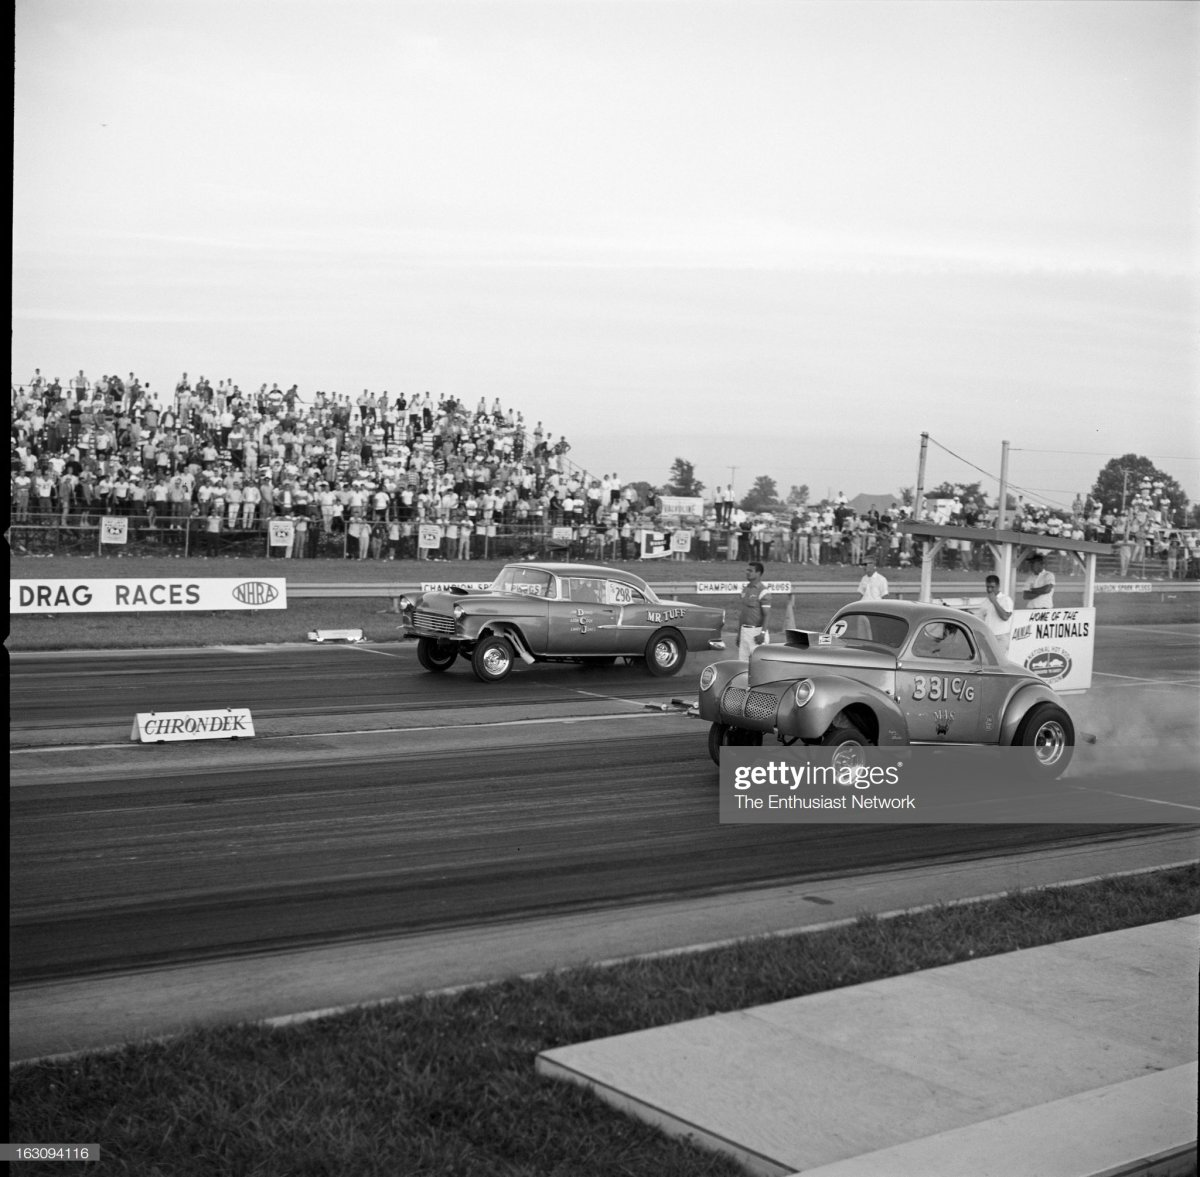 1 1965 natinonals and chevy gass.jpg